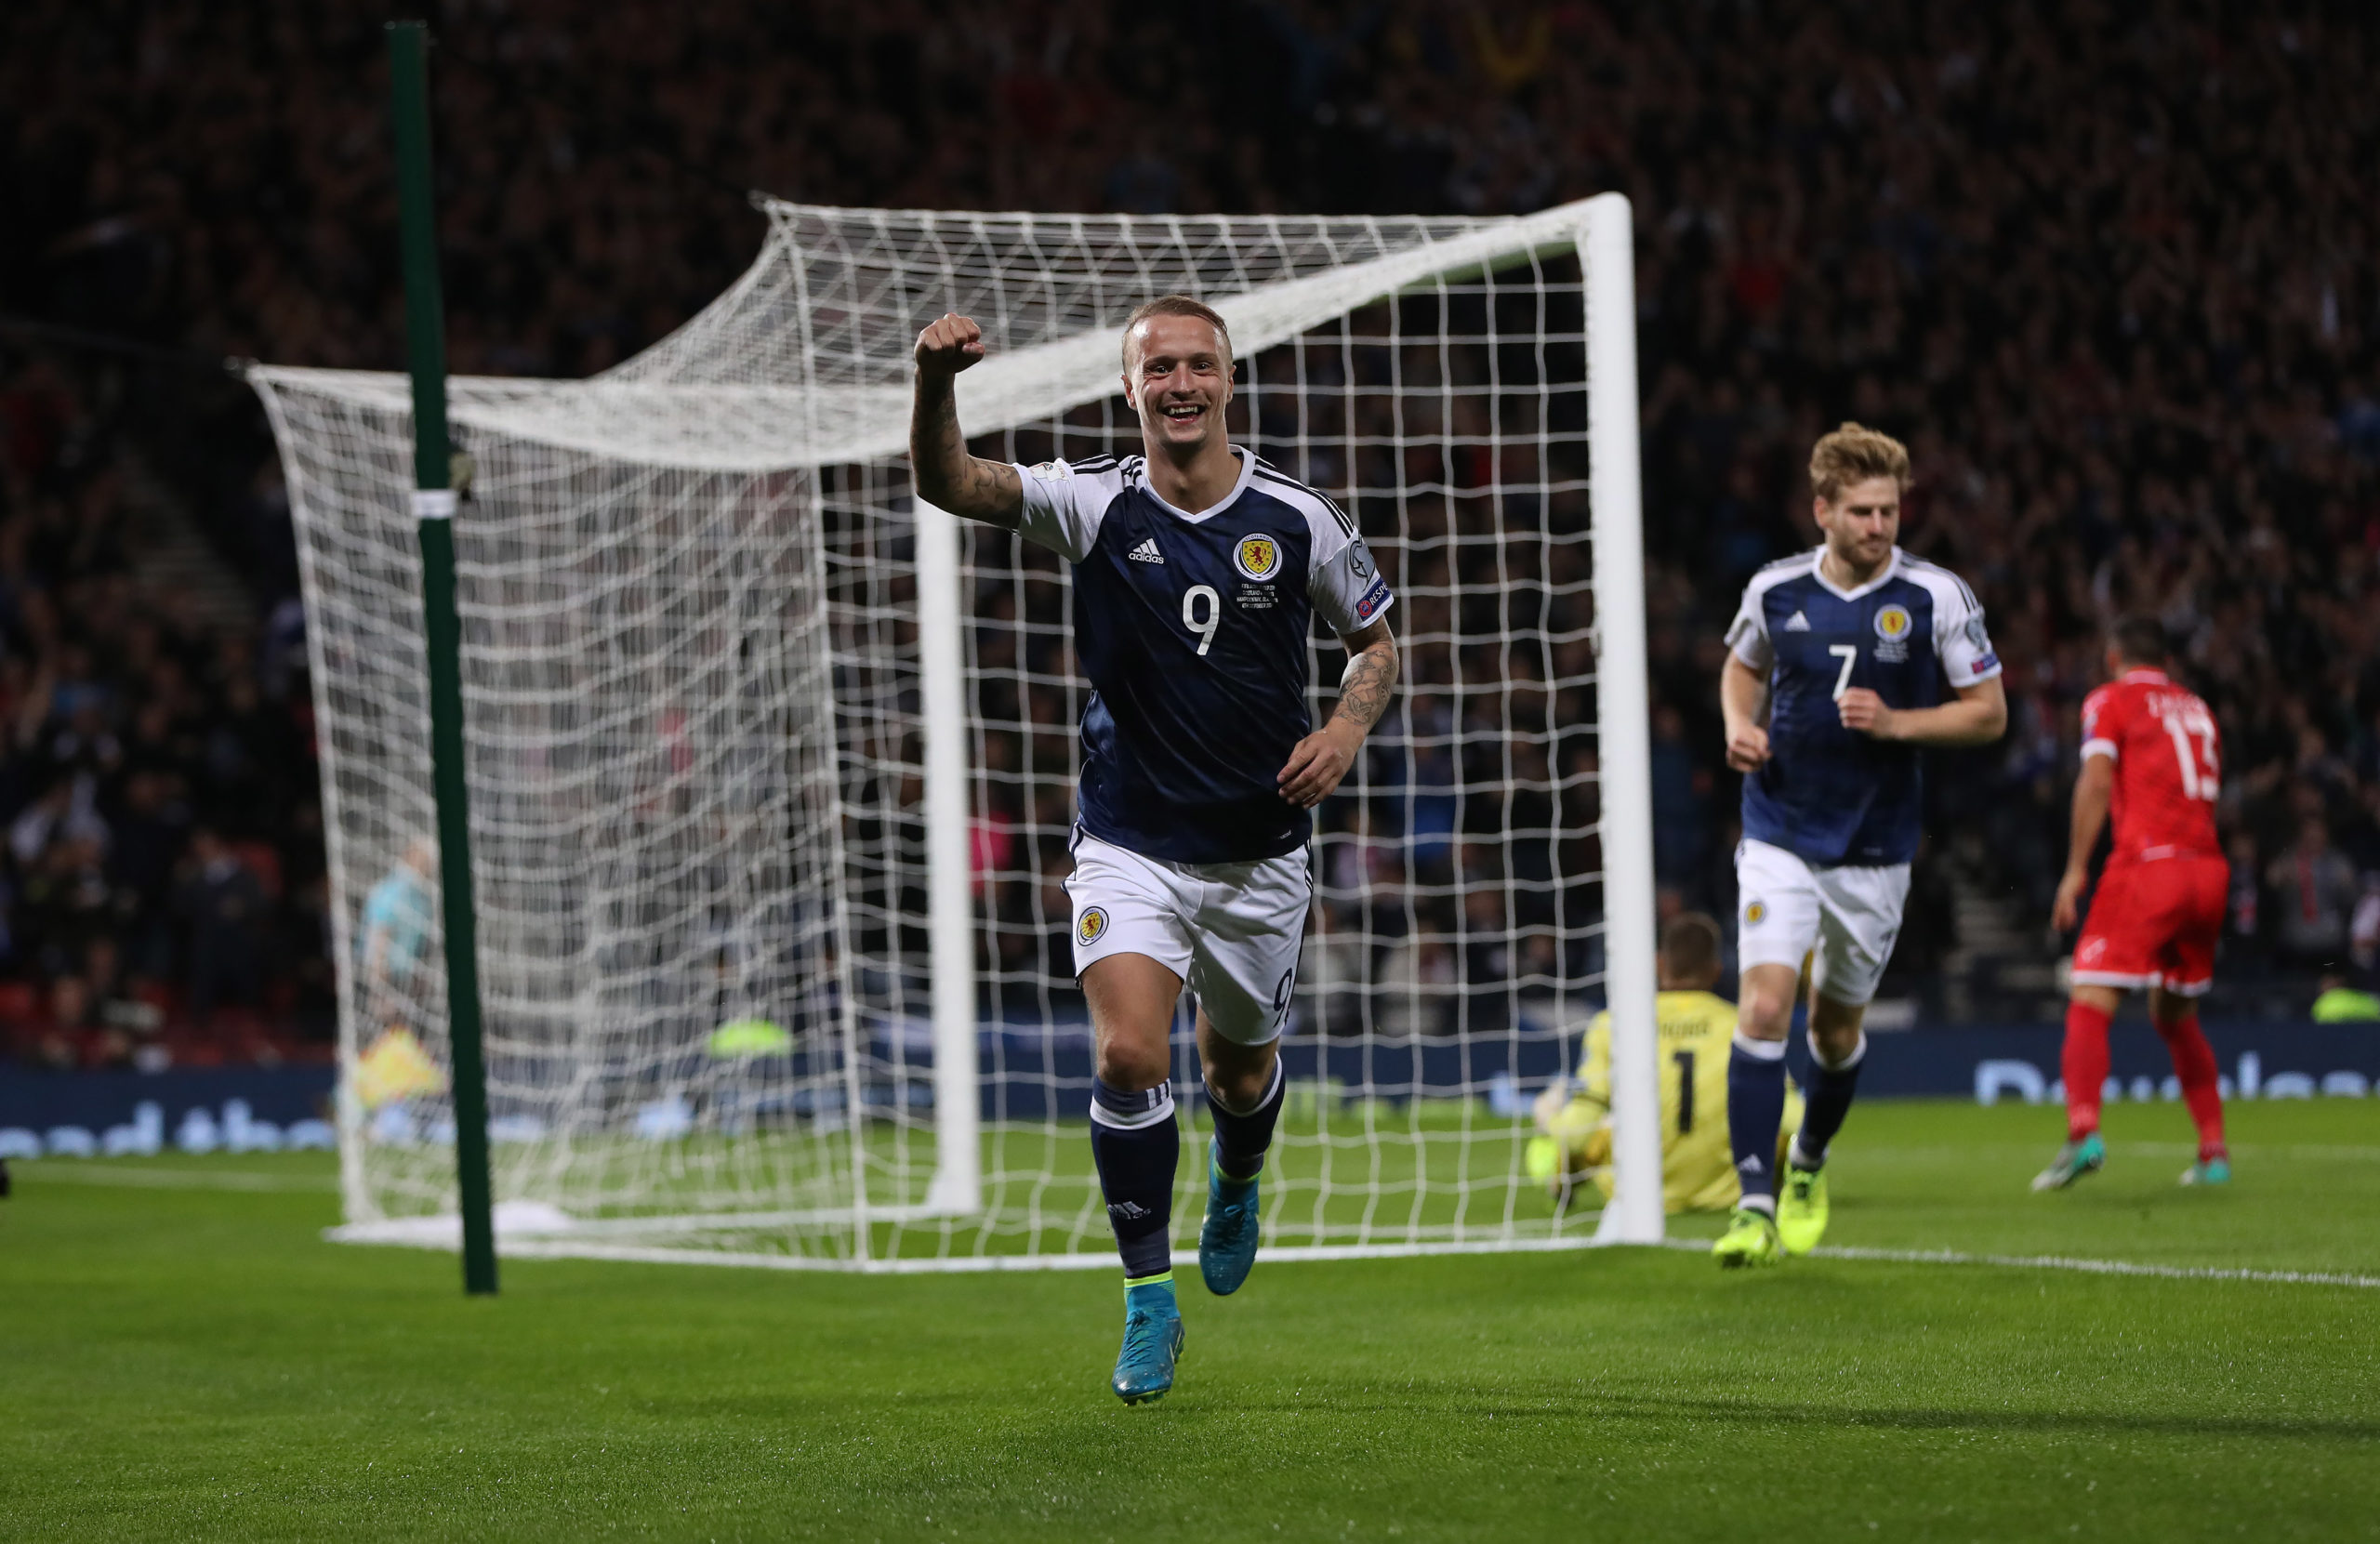 Celtic and Scotland striker Leigh Griffiths